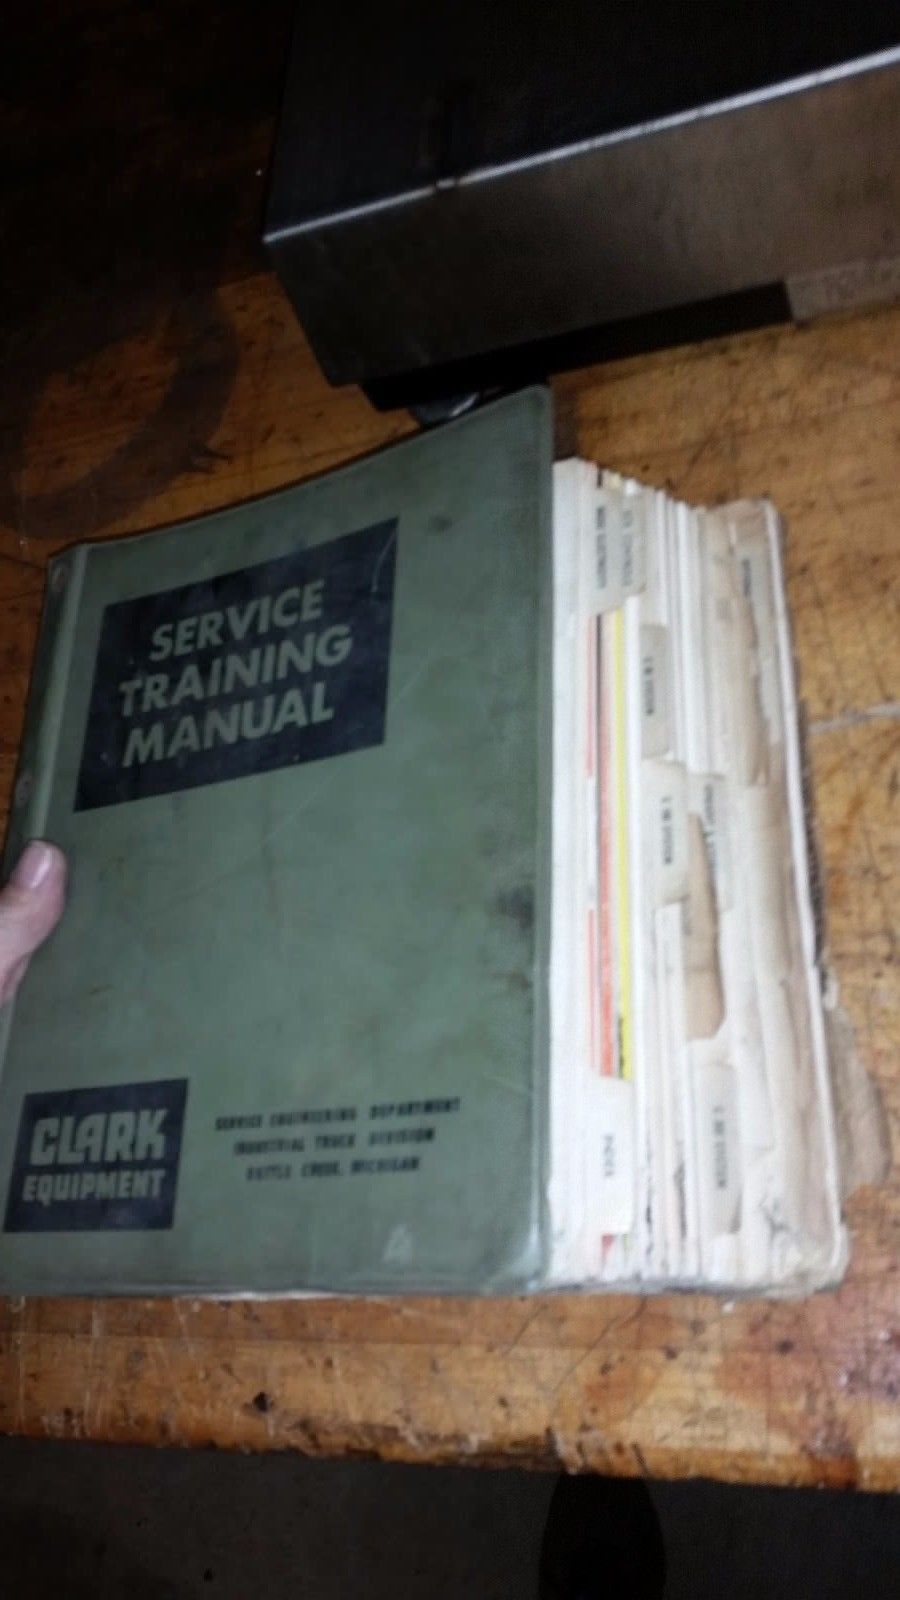 CLARK ELECTRIC FORK LIFT SERVICE TRAINING MANUAL BOOK GUIDE